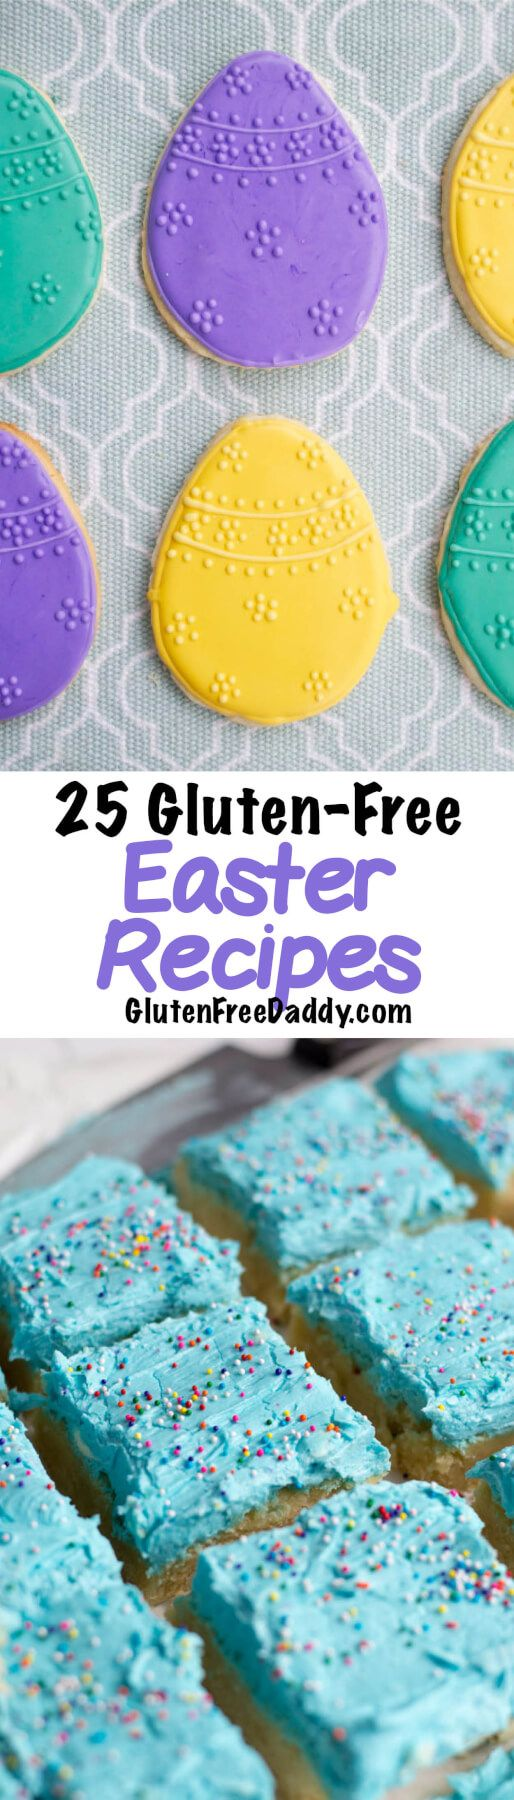 I have 25 of the best ever gluten-free Easter recipes for you to make for your Easter party. I have tons of gluten-free Easter dessert and treat recipes.